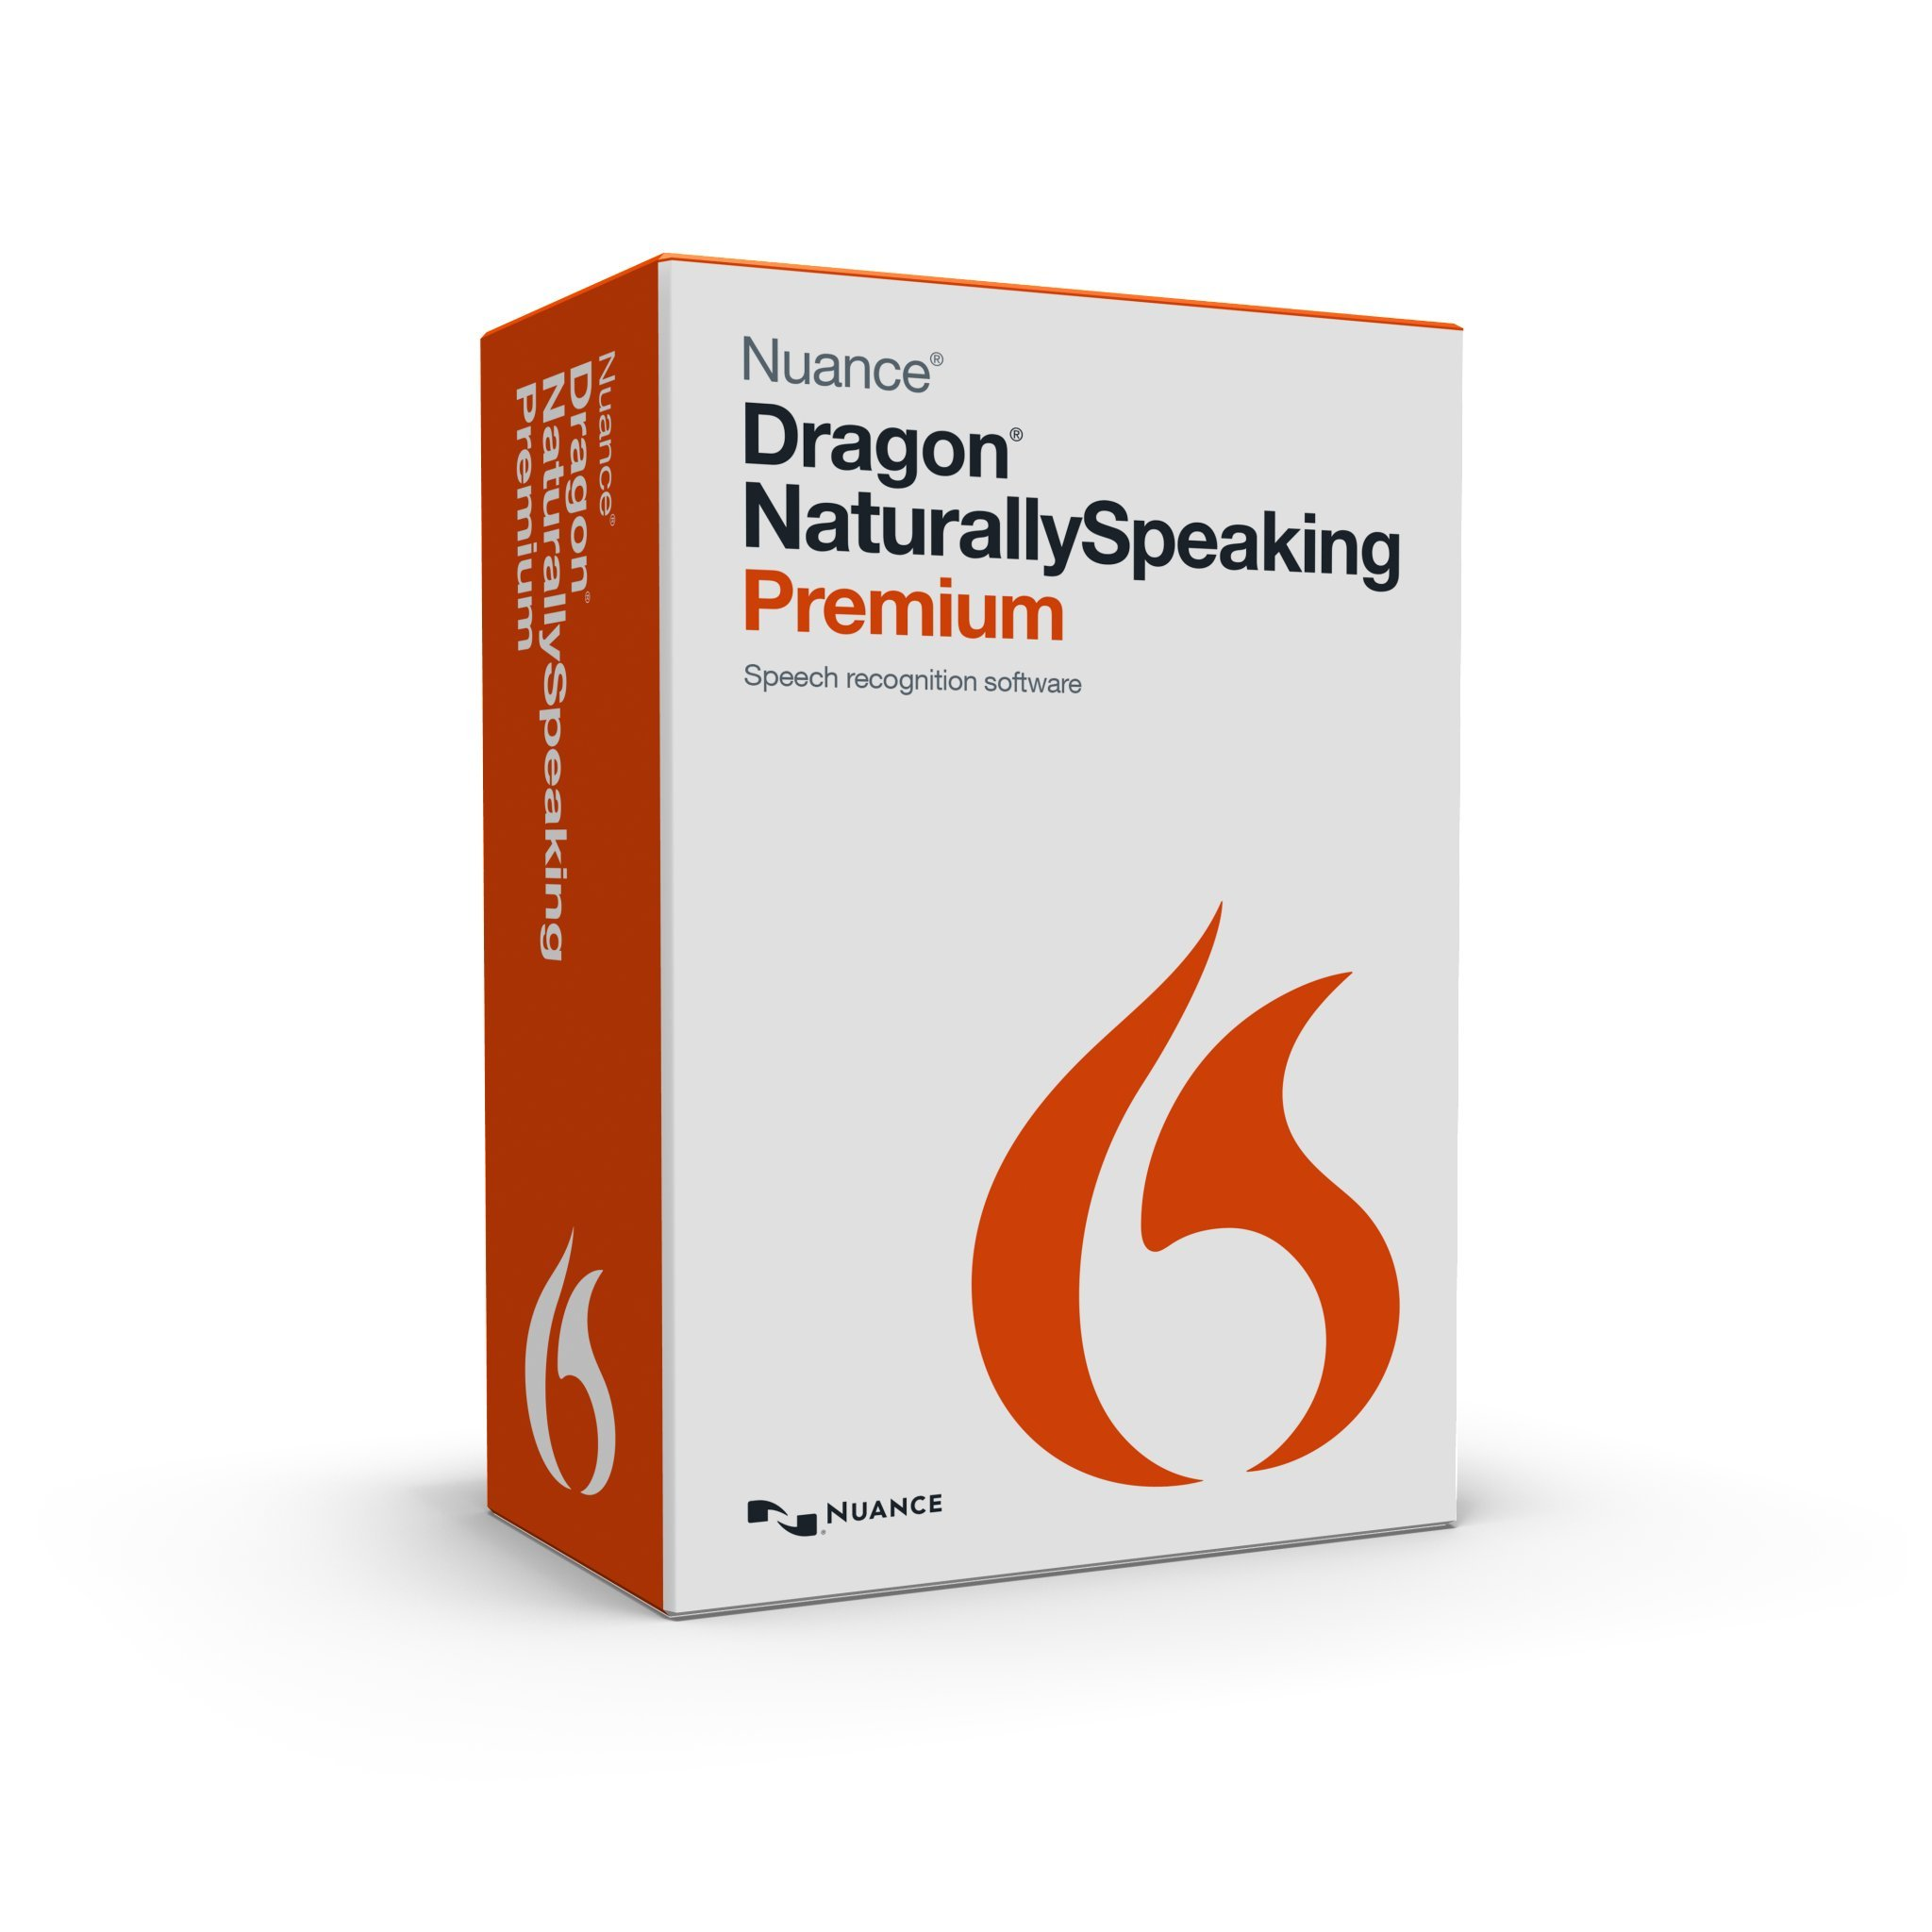 Nuance Dragon NaturallySpeaking Premium 13 (Discontinued) by Nuance Dragon